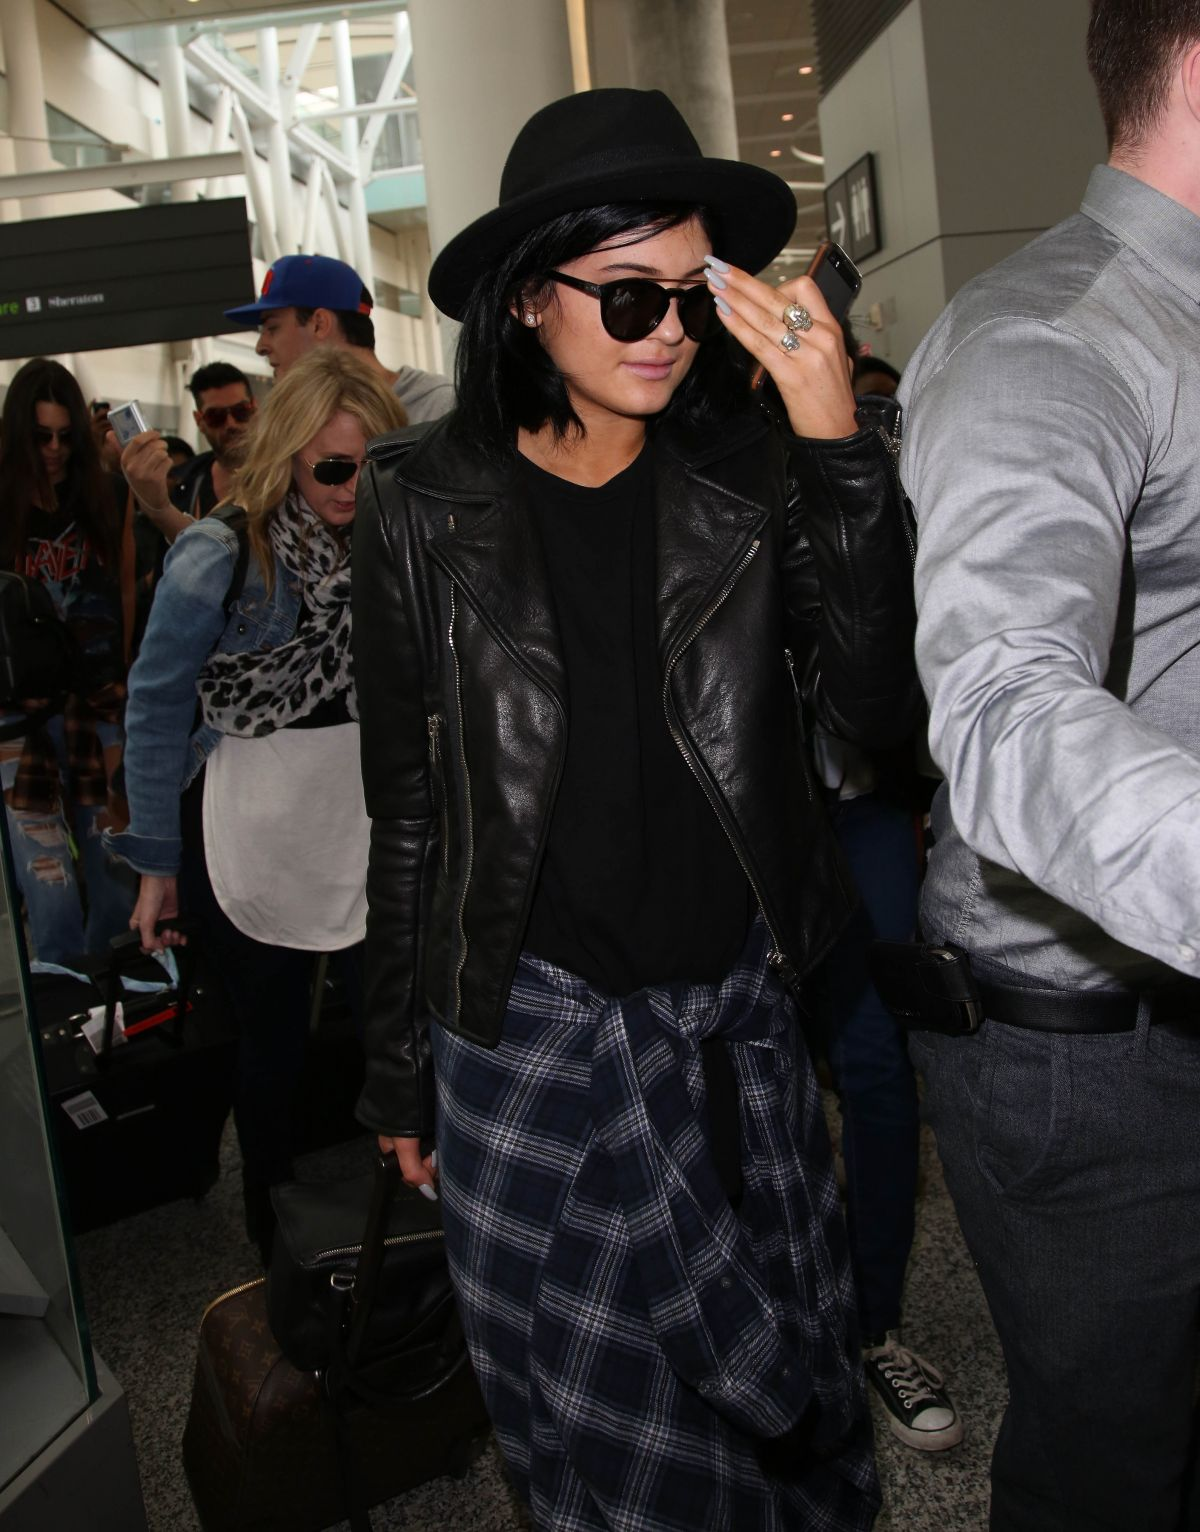 KYLIE and KENDALL JENNER at Pearson International Airport in Toronto